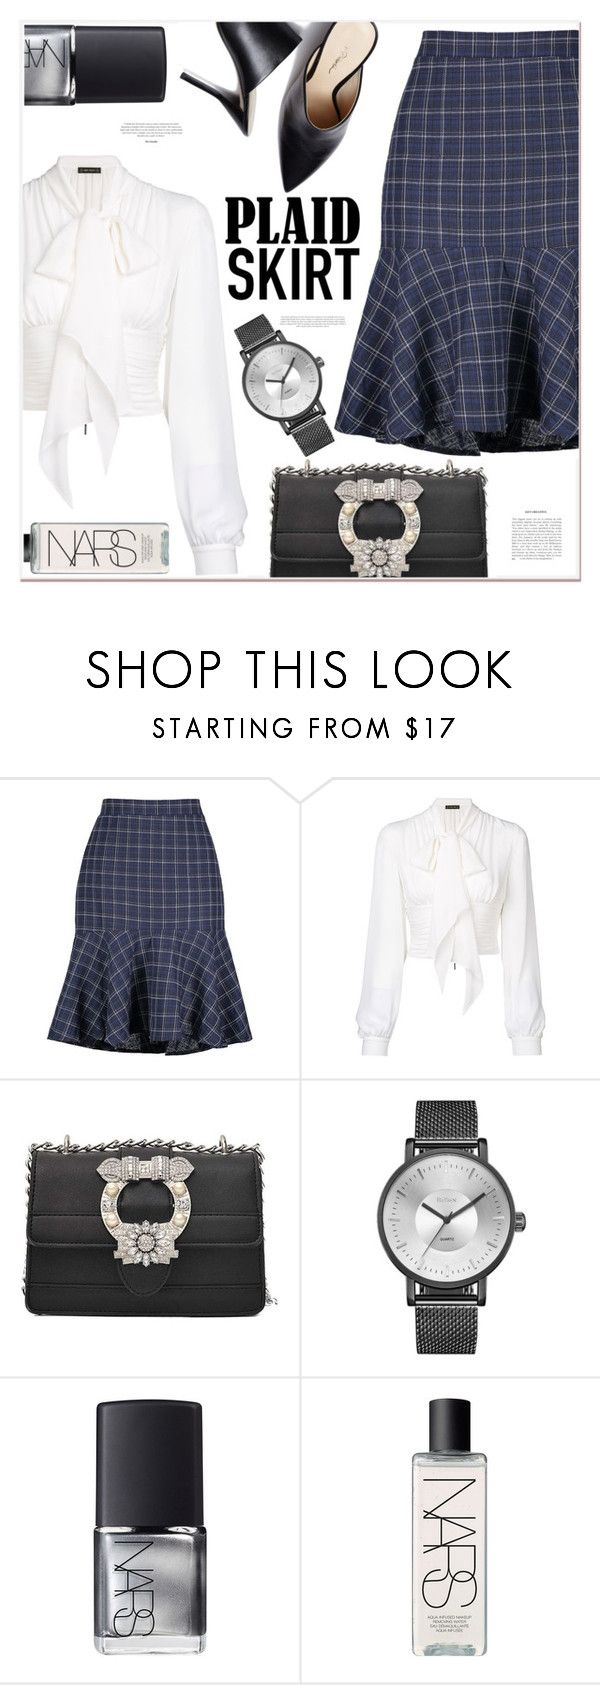 """""""plaid skirts"""" by mycherryblossom ❤ liked on Polyvore featuring Plein Sud and NARS Cosmetics"""